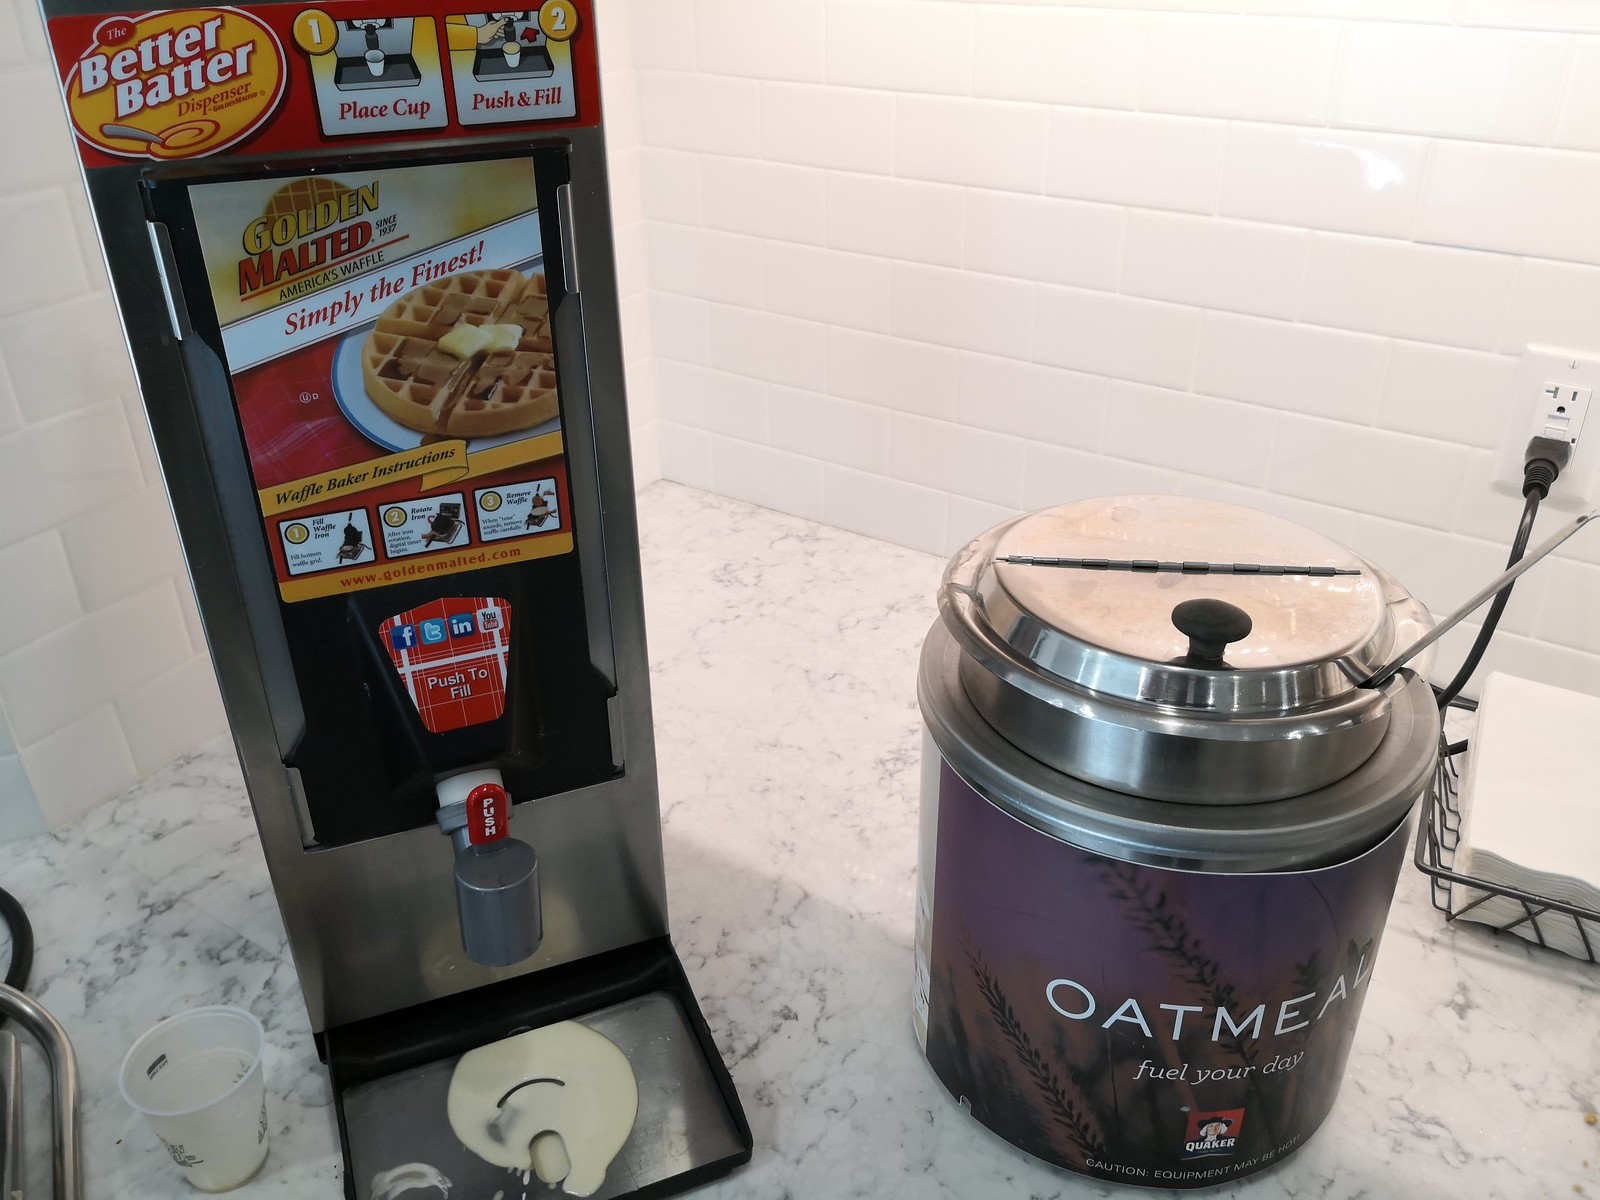 Waffle batter dispenser and oatmeal